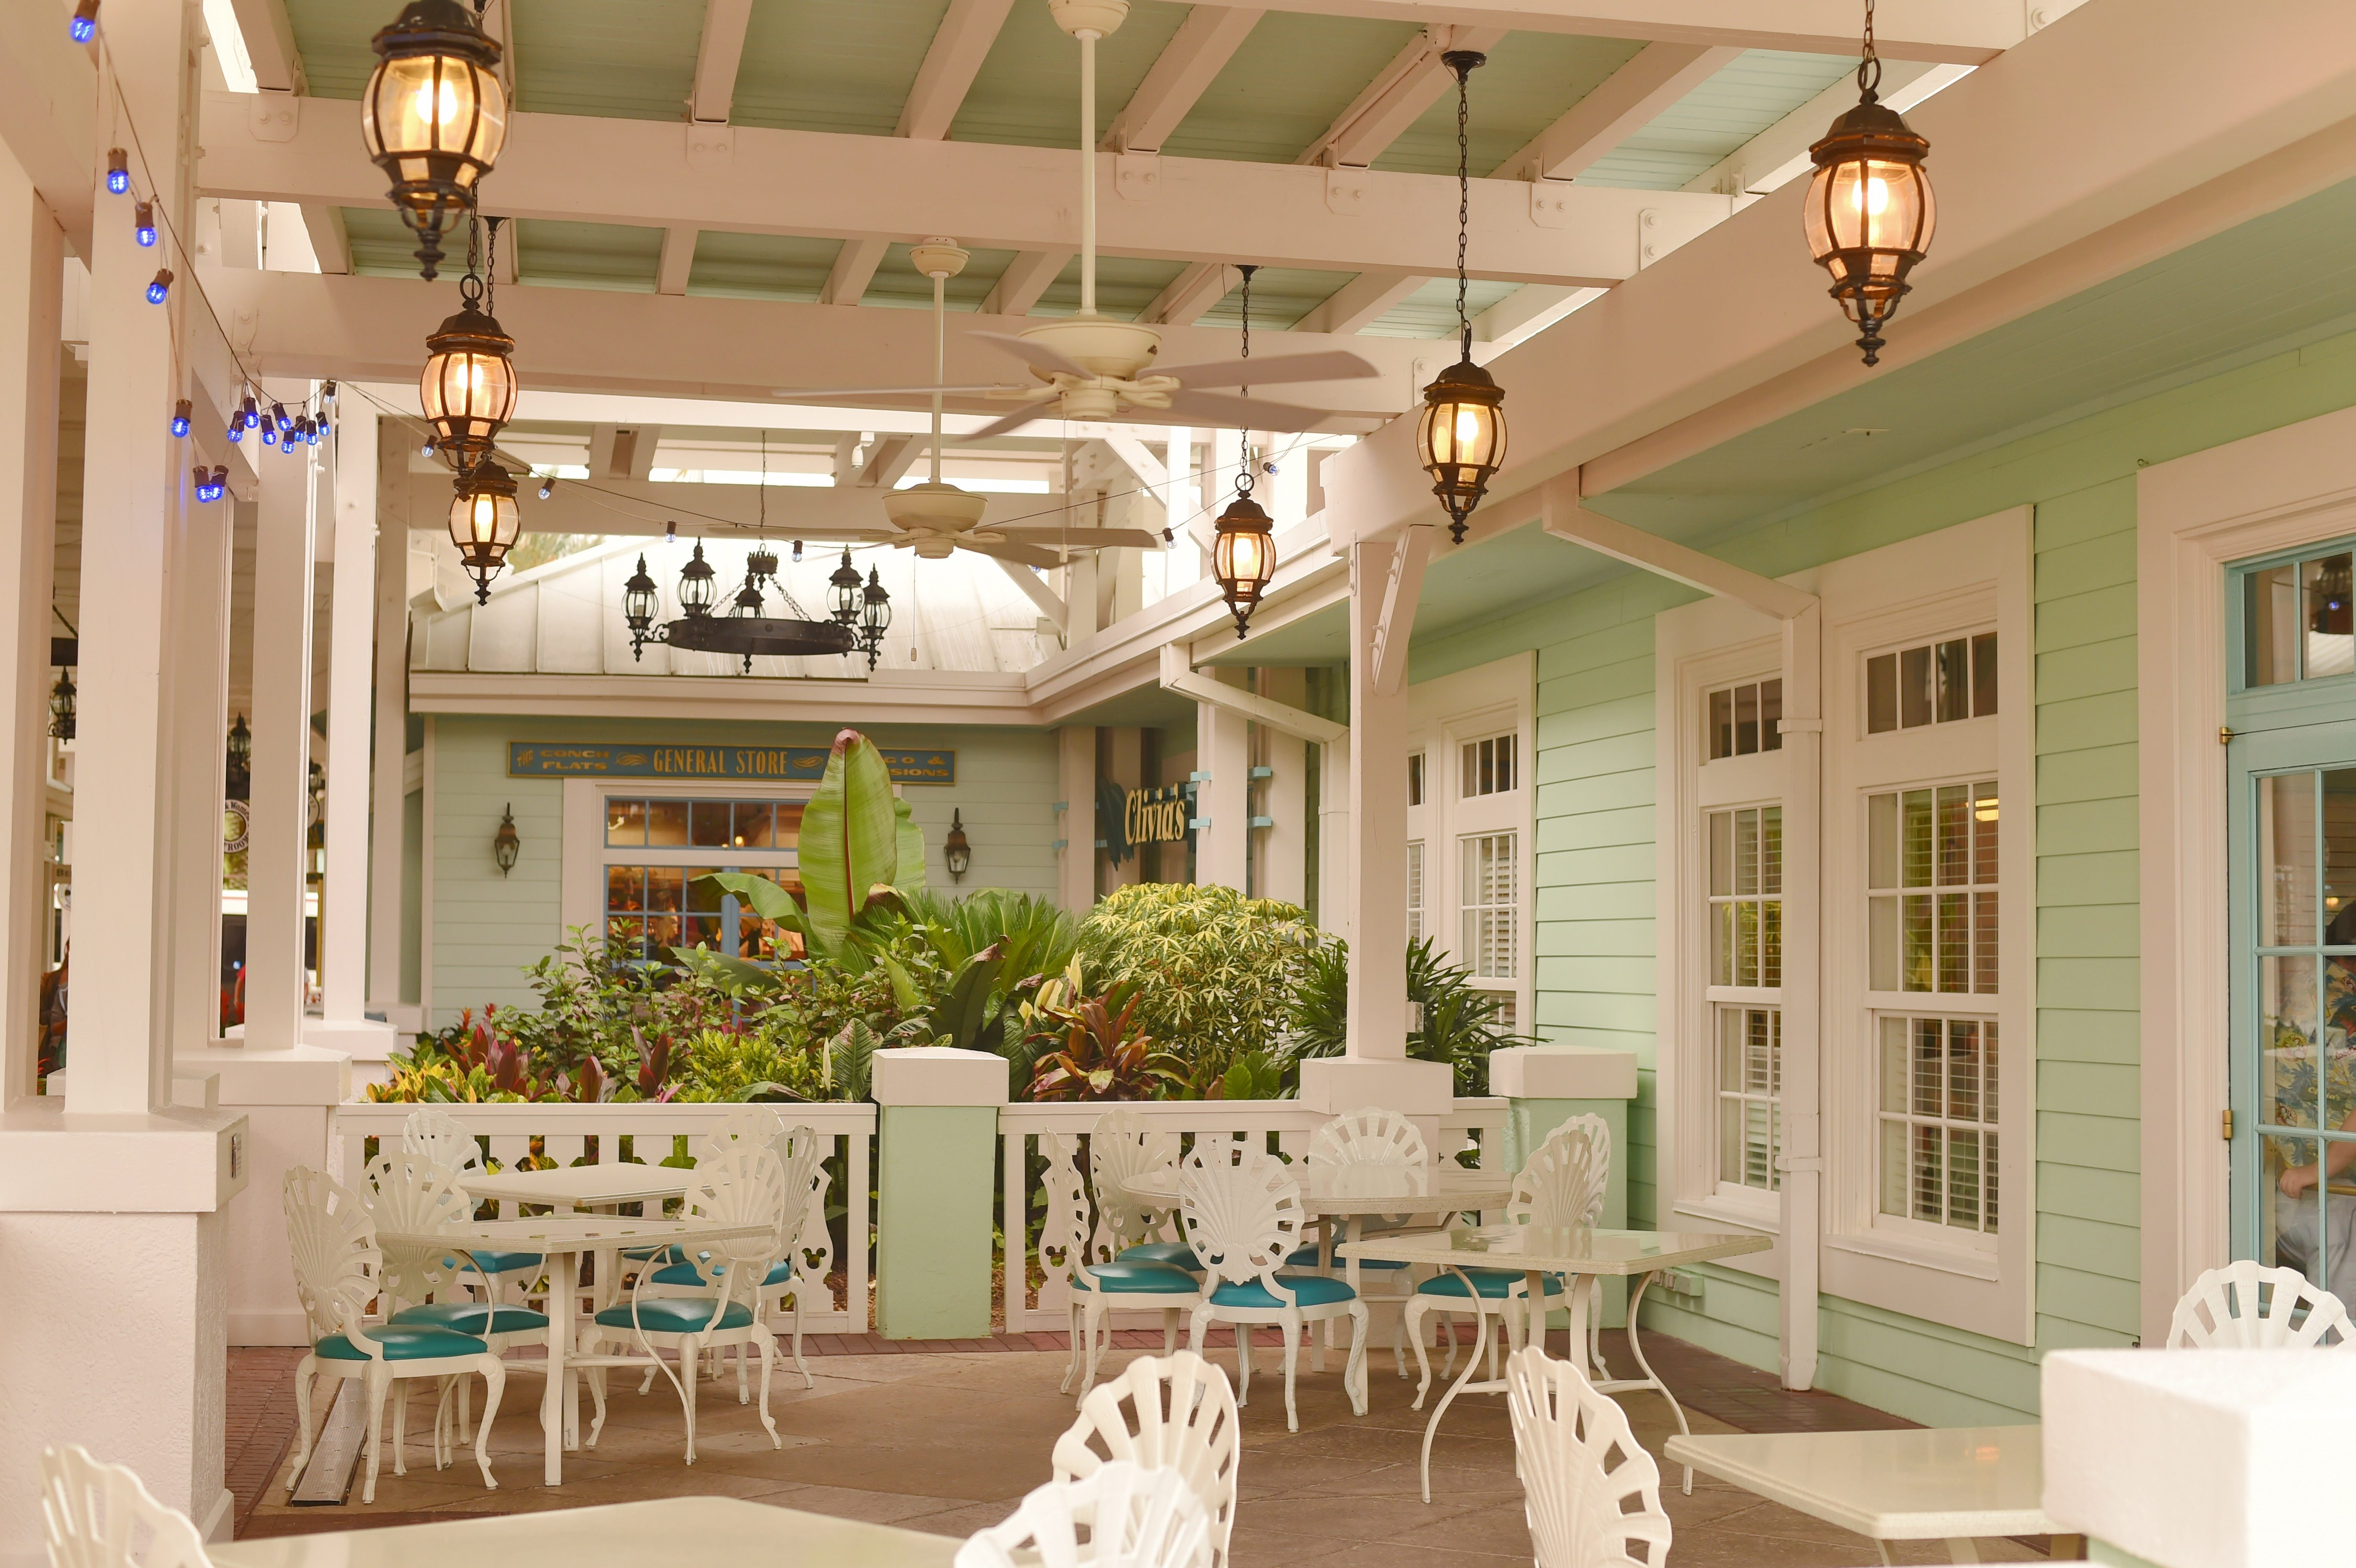 A vintage looking seating area outside at Disney's Old Key West Resort